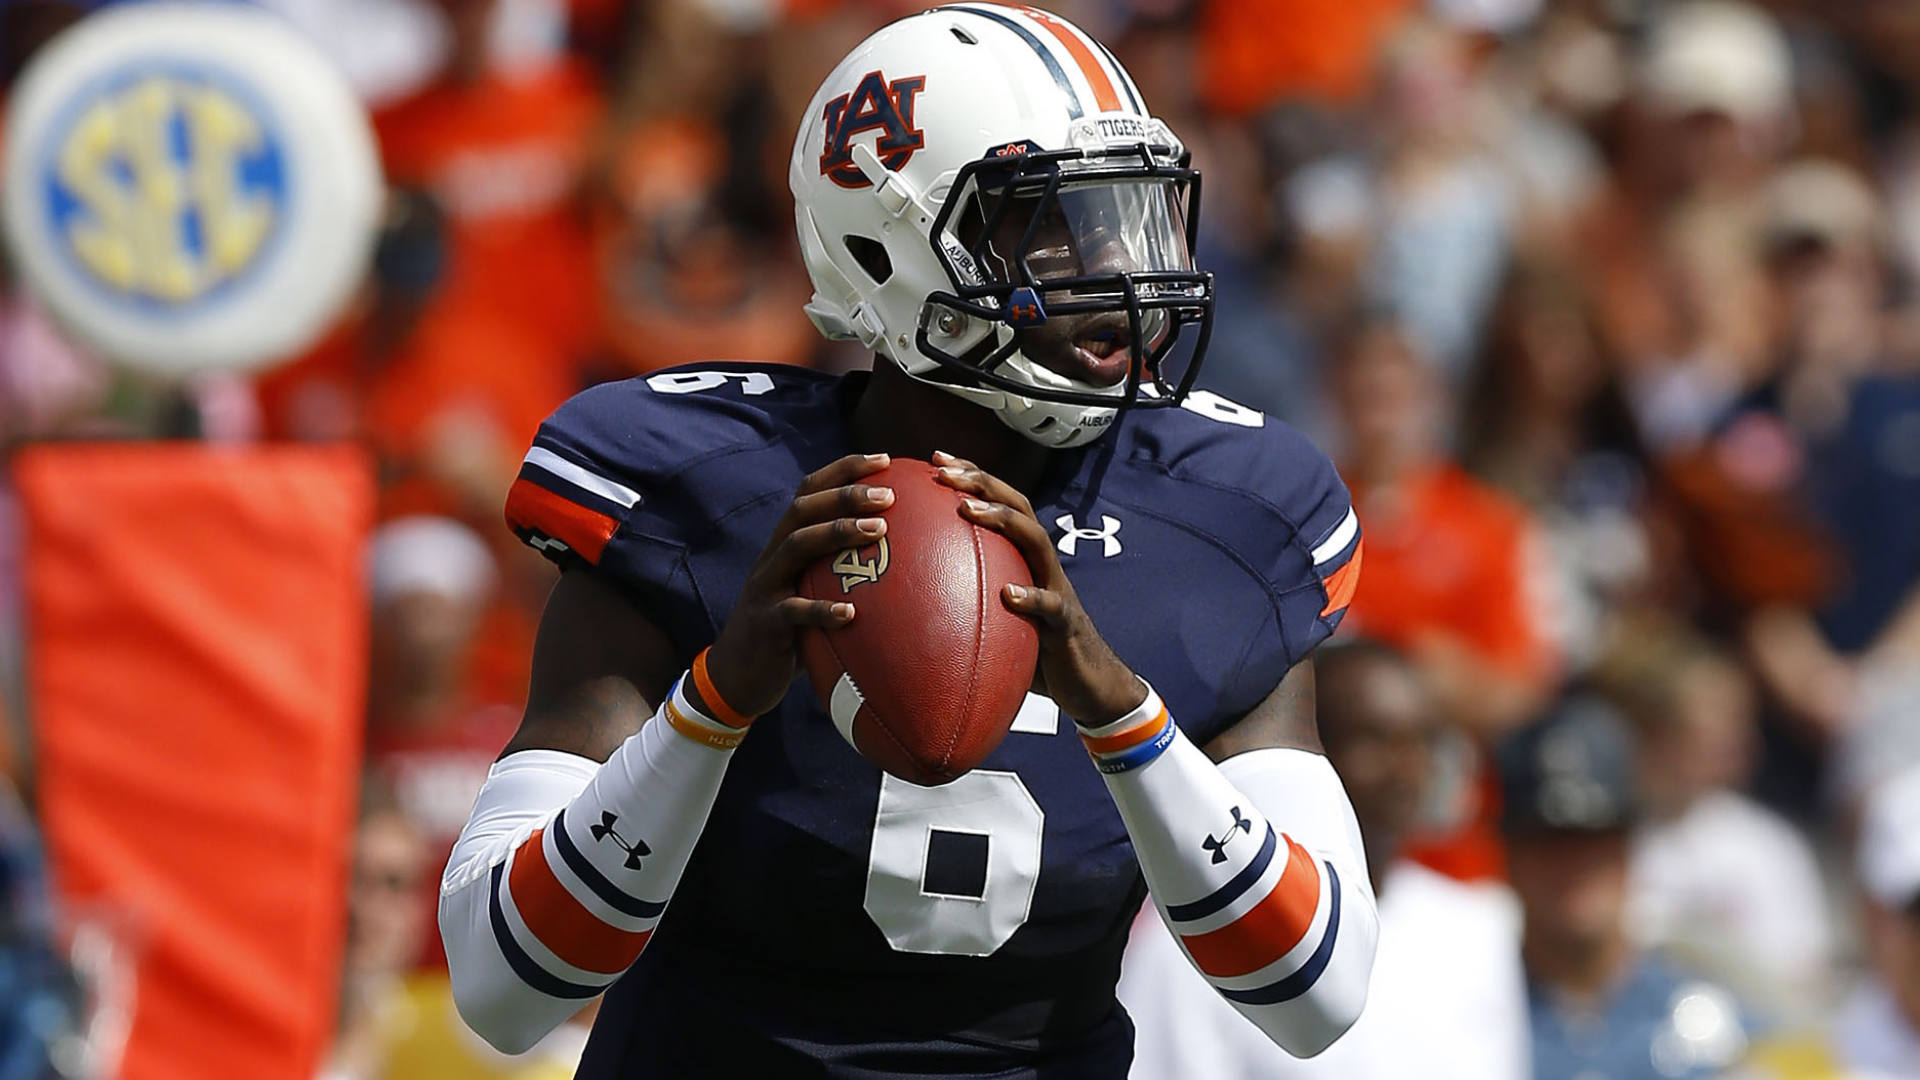 Early college football bettors jump on Auburn and Michigan, fade Arkansas, Boise State